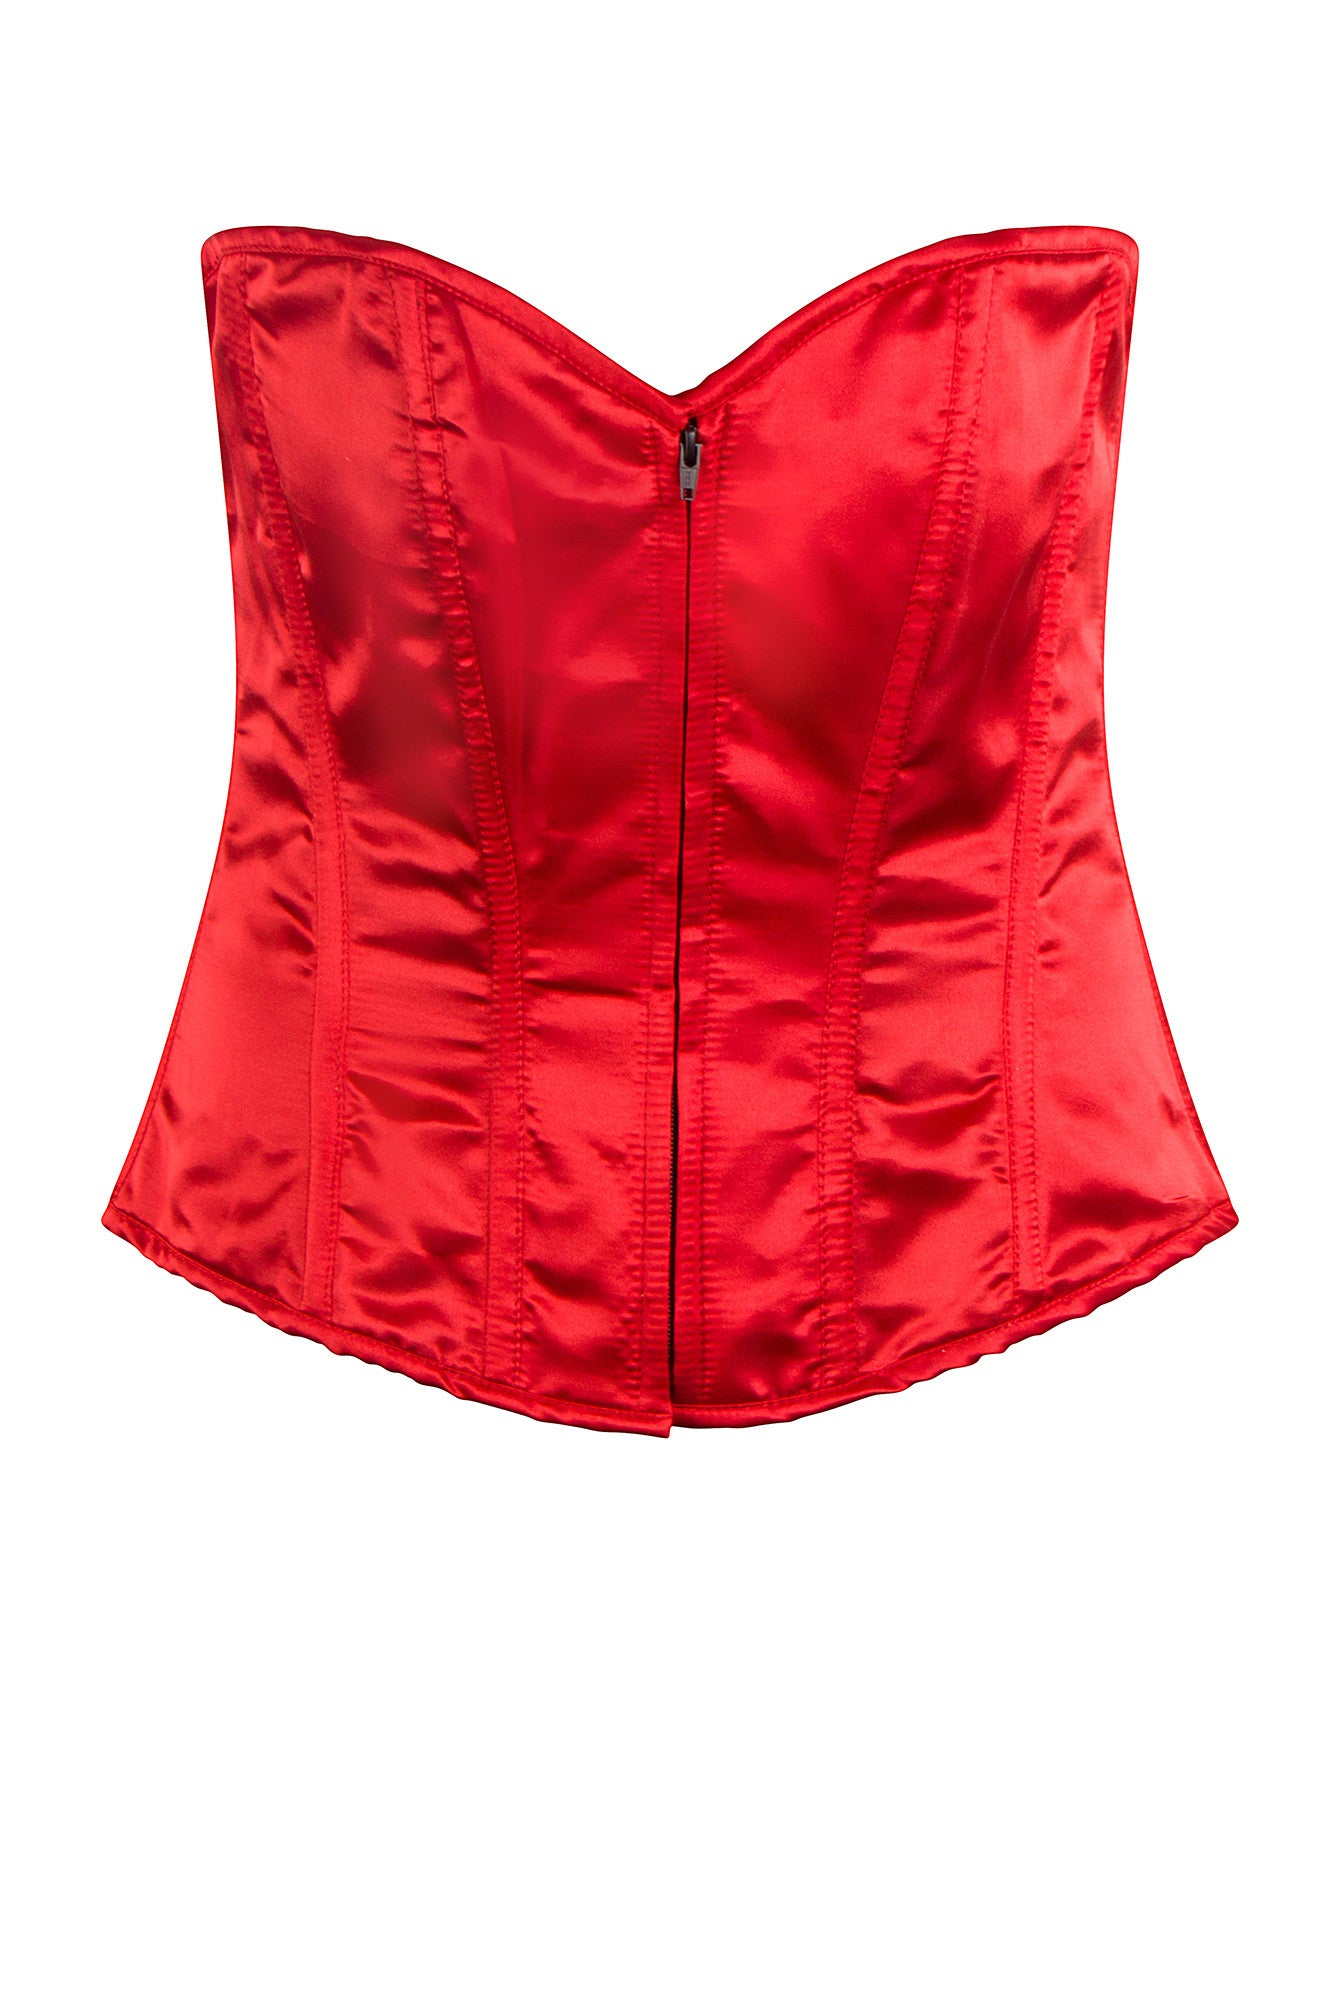 RED SATIN DELUXE PLUS SIZE CORSET BASQUE